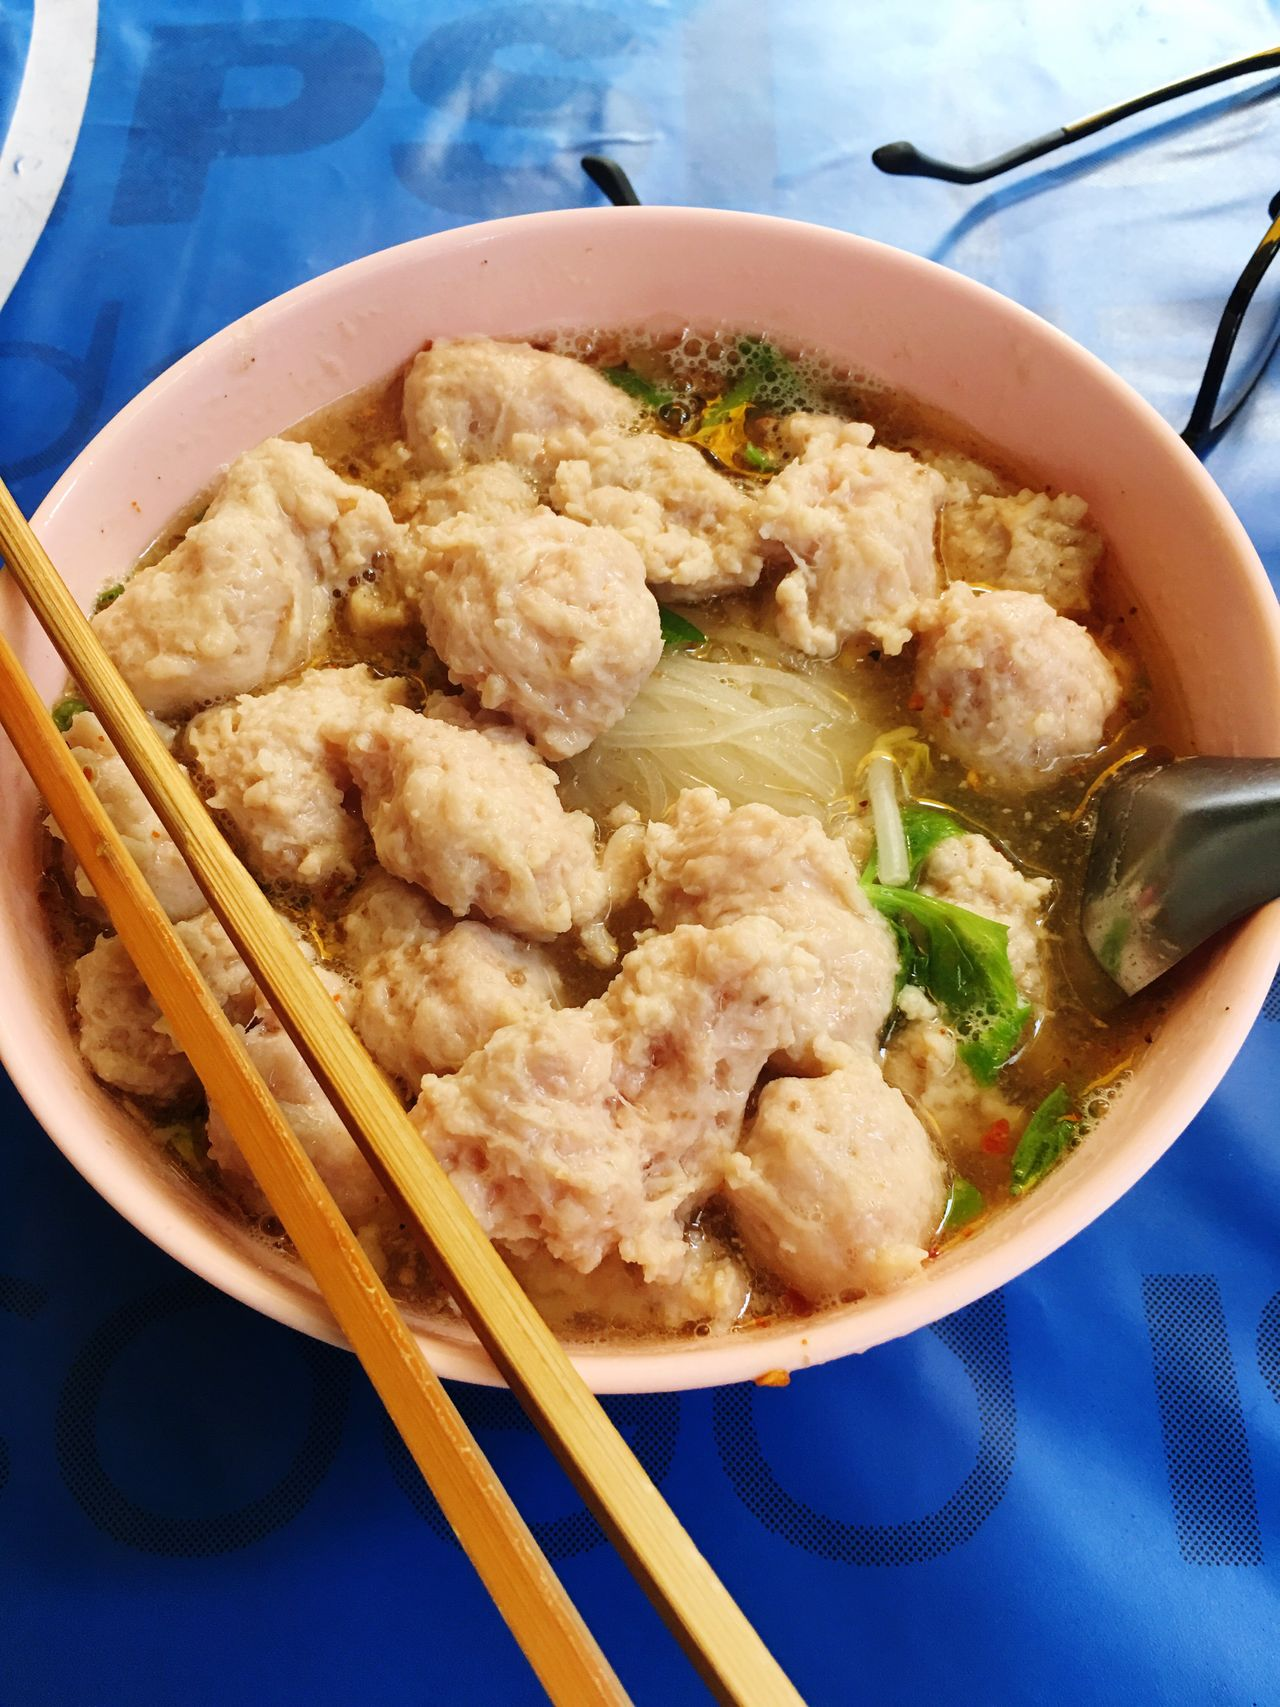 Big bowl noodles Pork Ball noodles Food And Drink Food Ready-to-eat Bowl Table Freshness Serving Size Close-up Healthy Eating No People Day